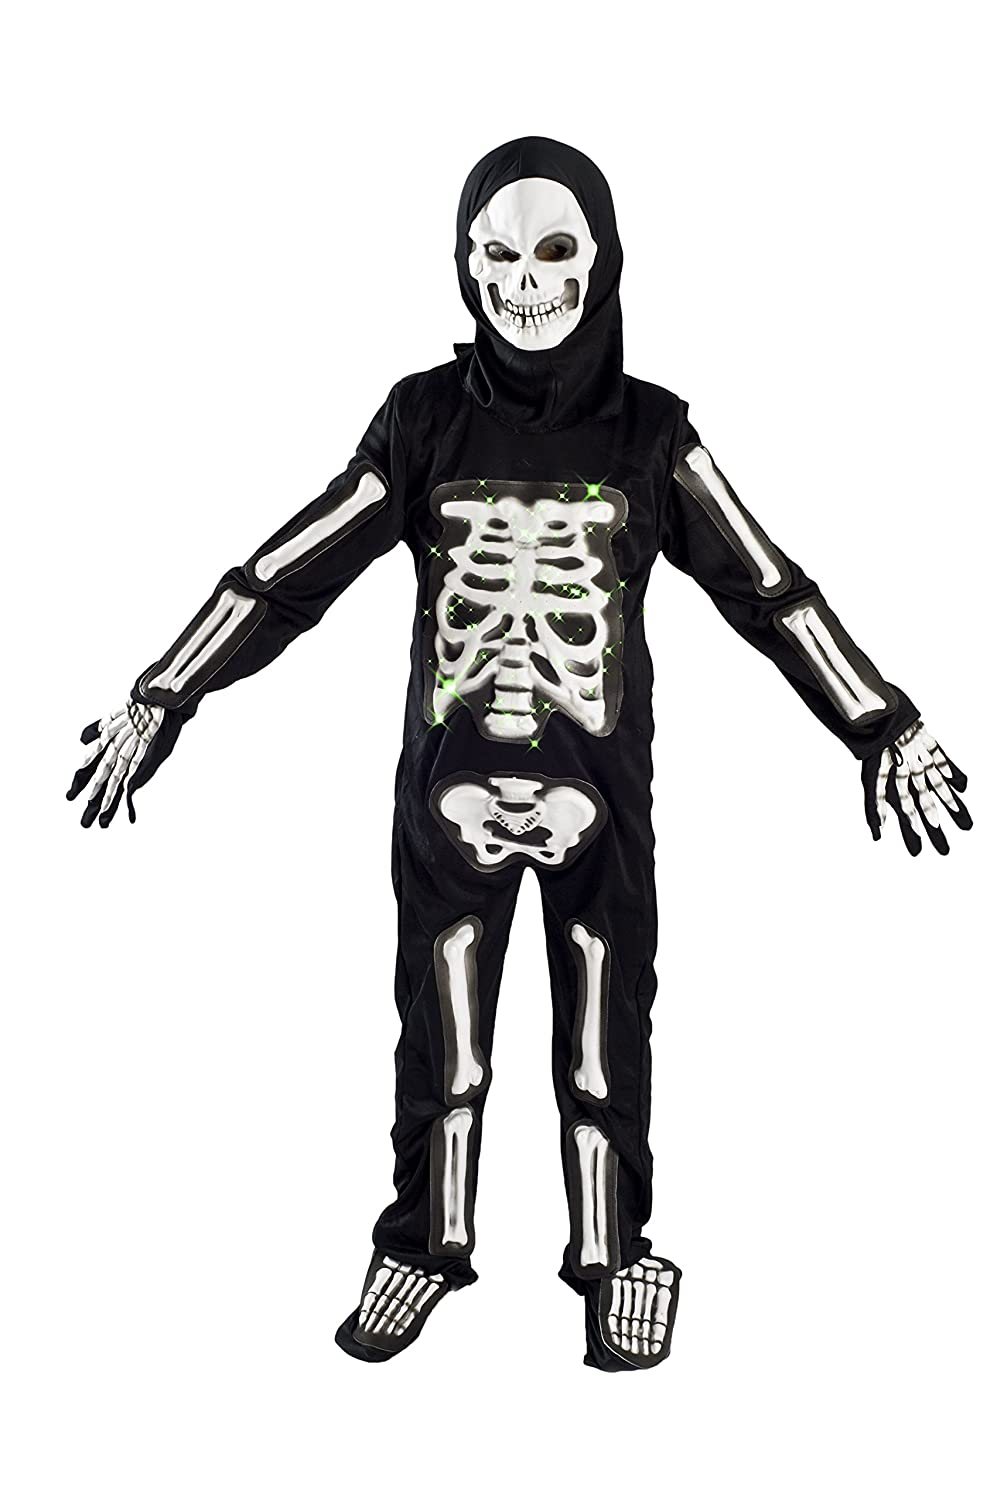 amazoncom skeleton costume for boys kids light up halloween size m 5 7 l 6 9 clothing - Skeleton Halloween Costume For Kids